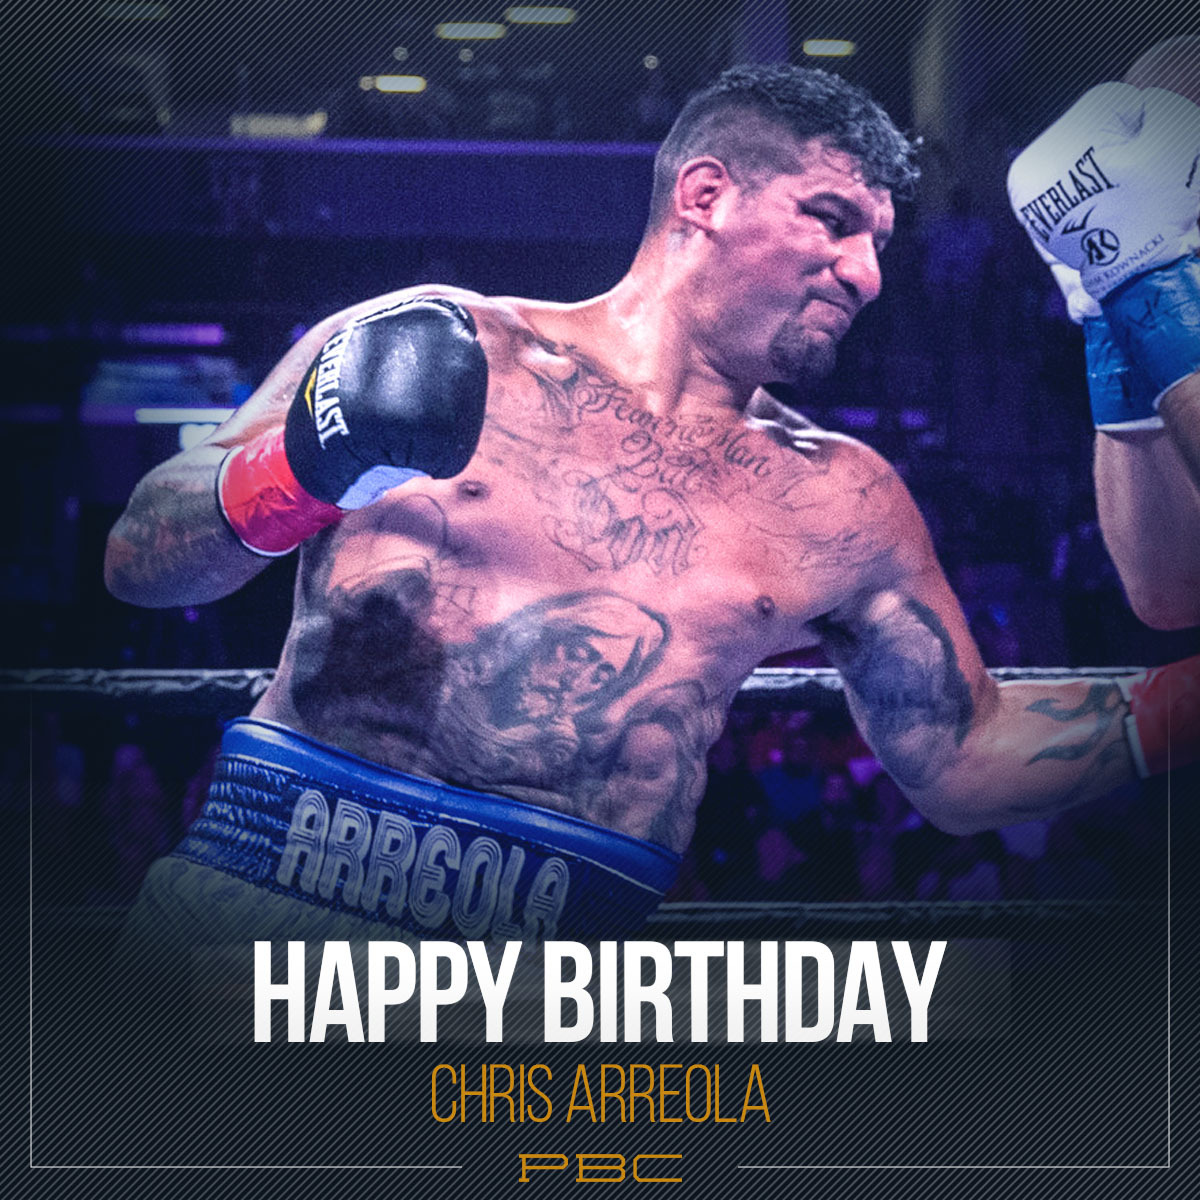 LIKE & RETWEET to wish Heavyweight title challenger and fan favorite @nightmareboxing a Happy Birthday! #TeamNightmare #PBCBirthdays 🇲🇽 🇺🇸